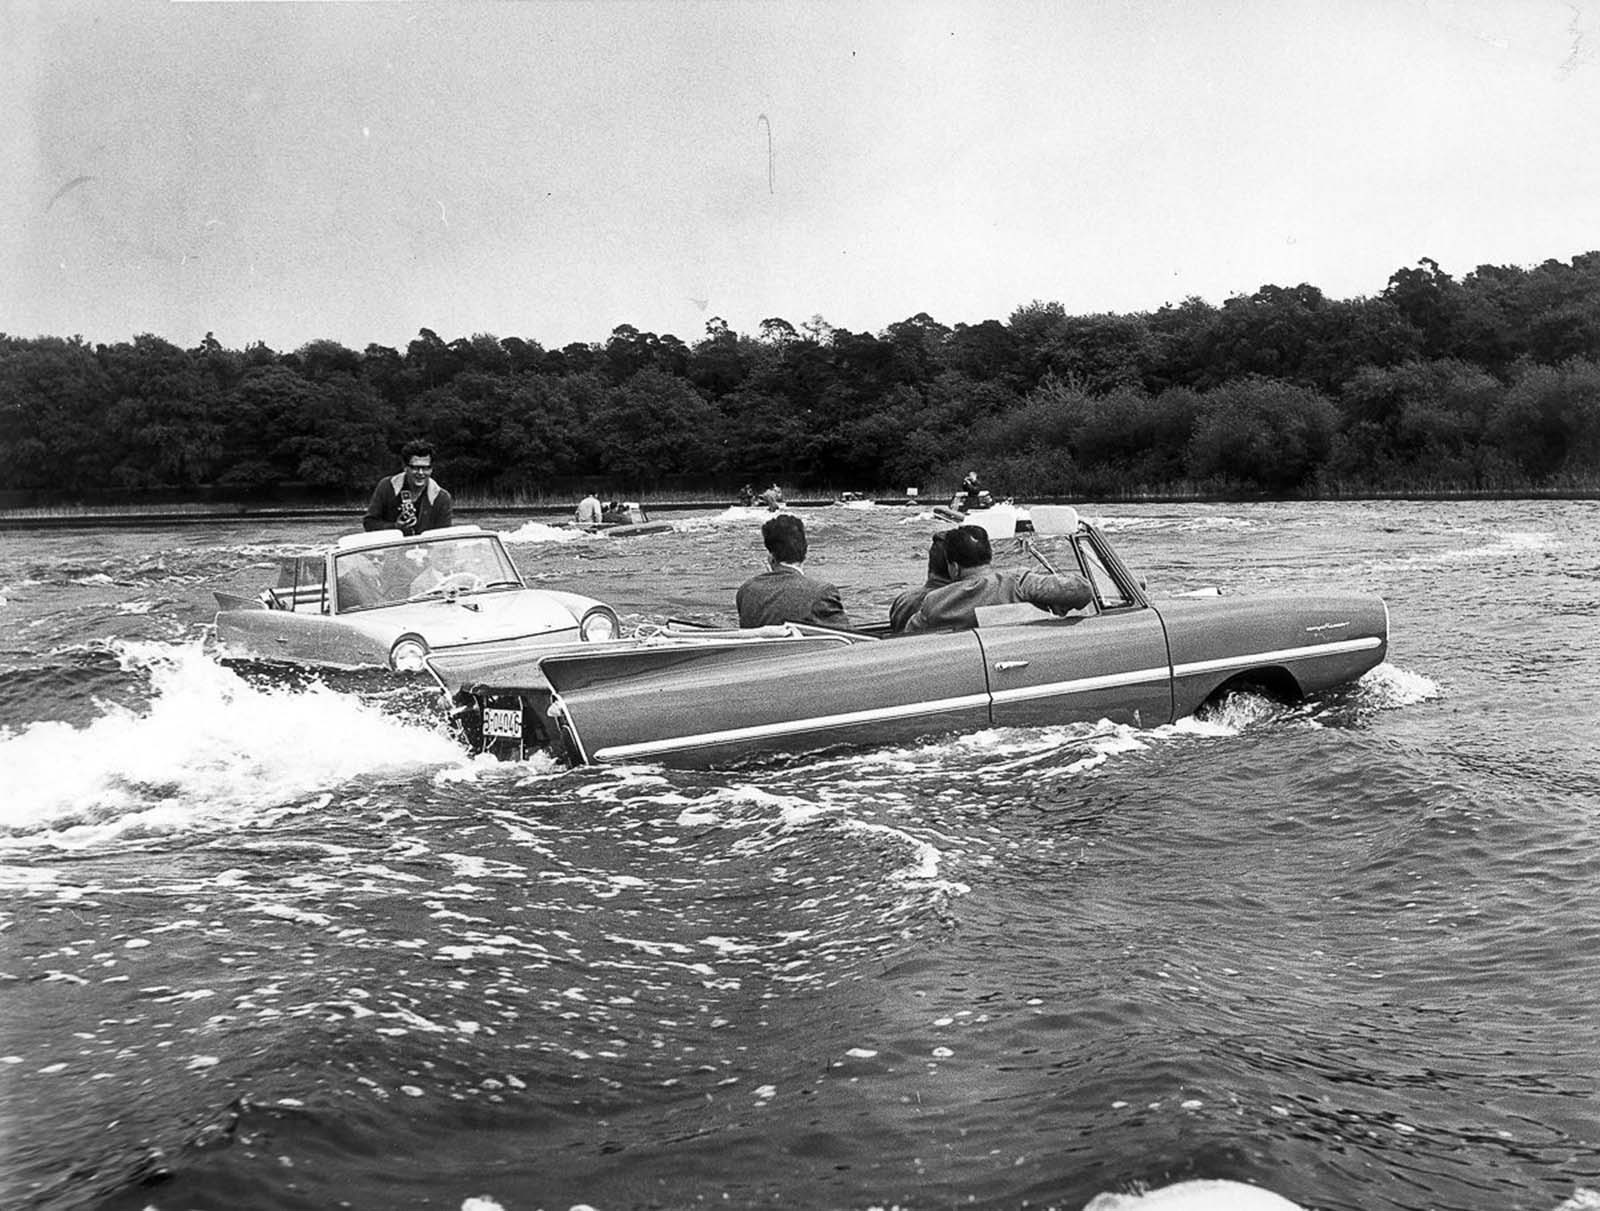 Two Amphicars crossed the English Channel in Sept. 1965 enduring 20-foot (6.1 m) waves and gale-force winds.